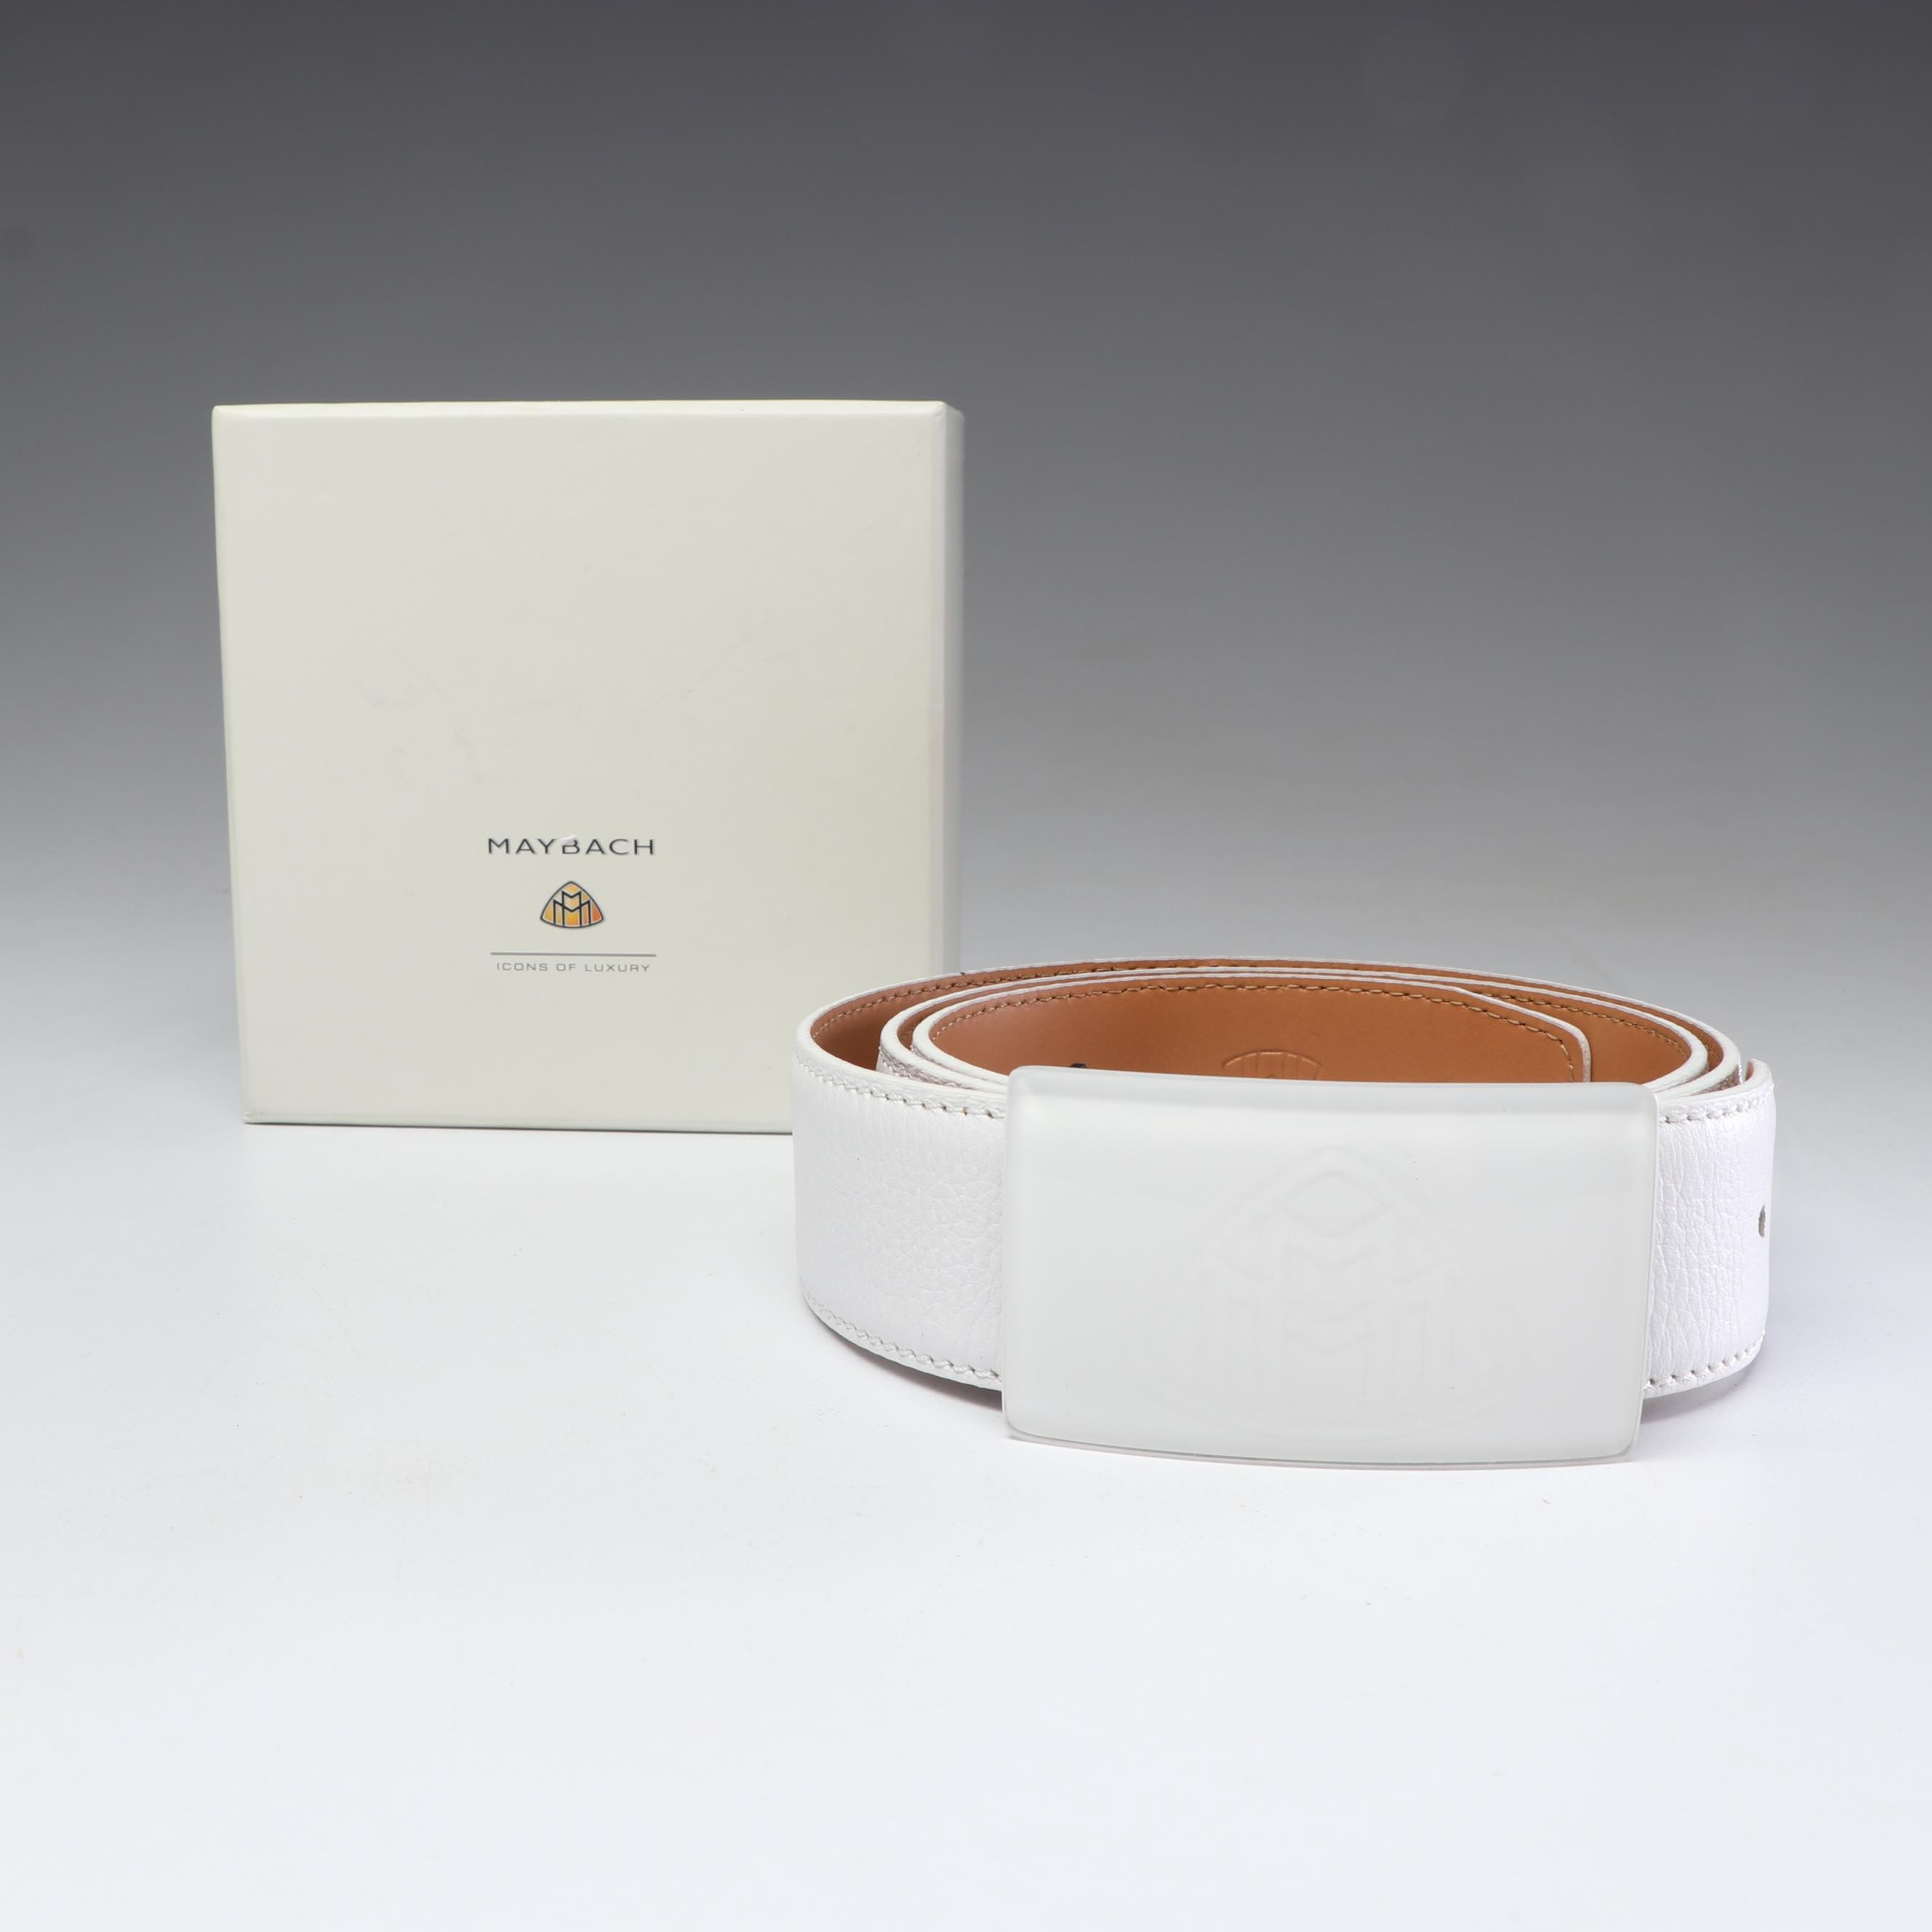 Maybach White Leather Belt, Italy